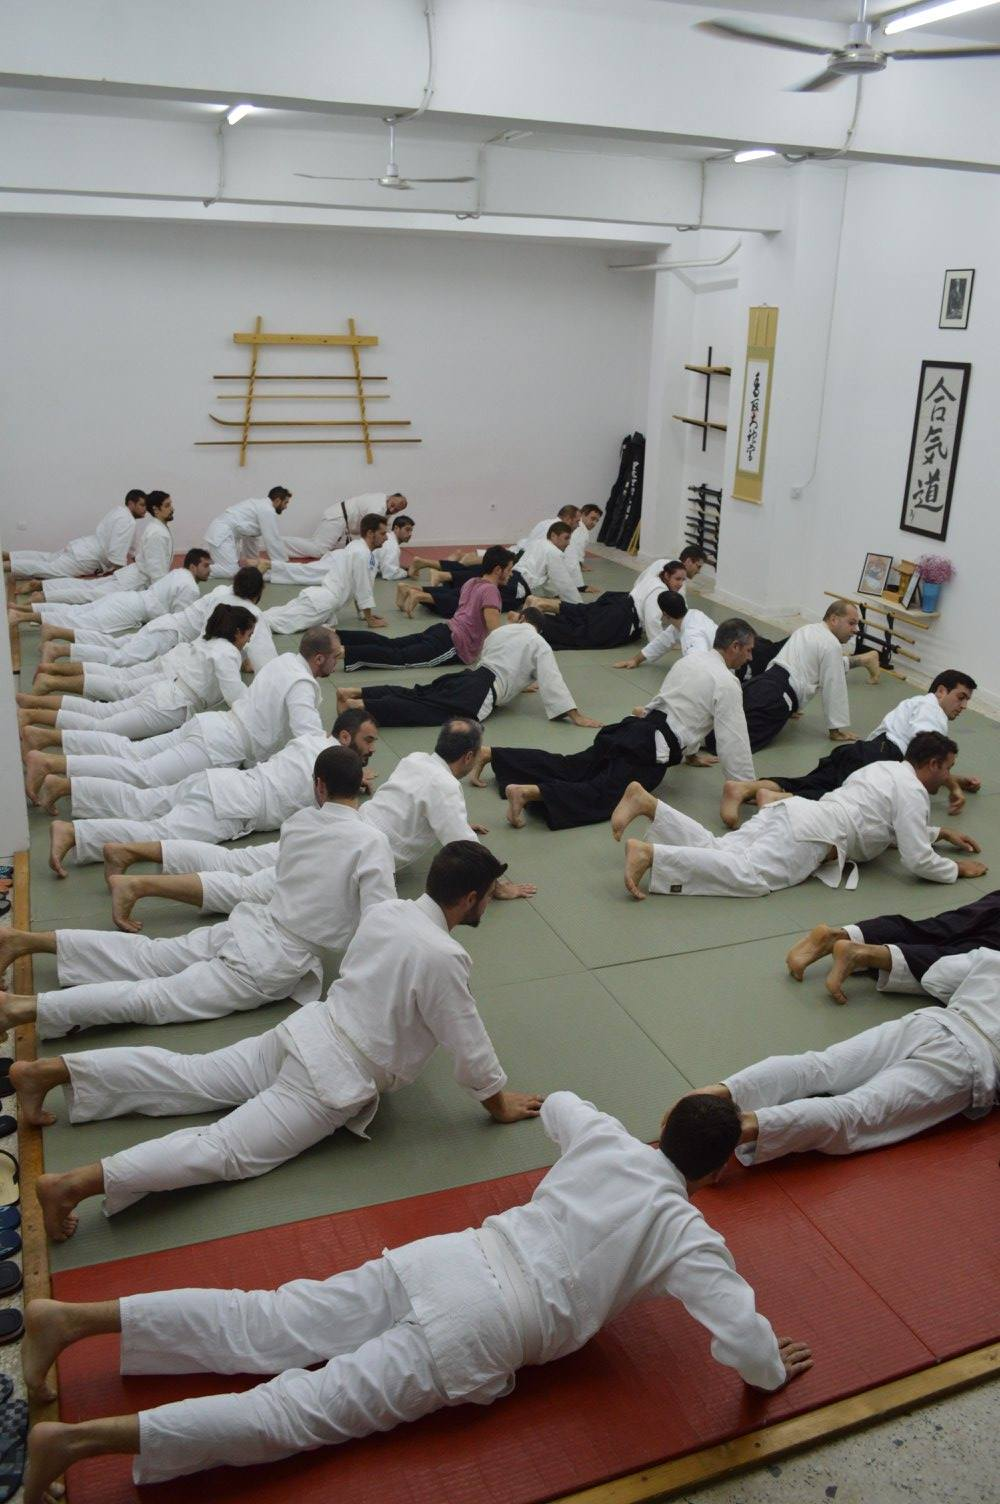 abc common aikido practice15